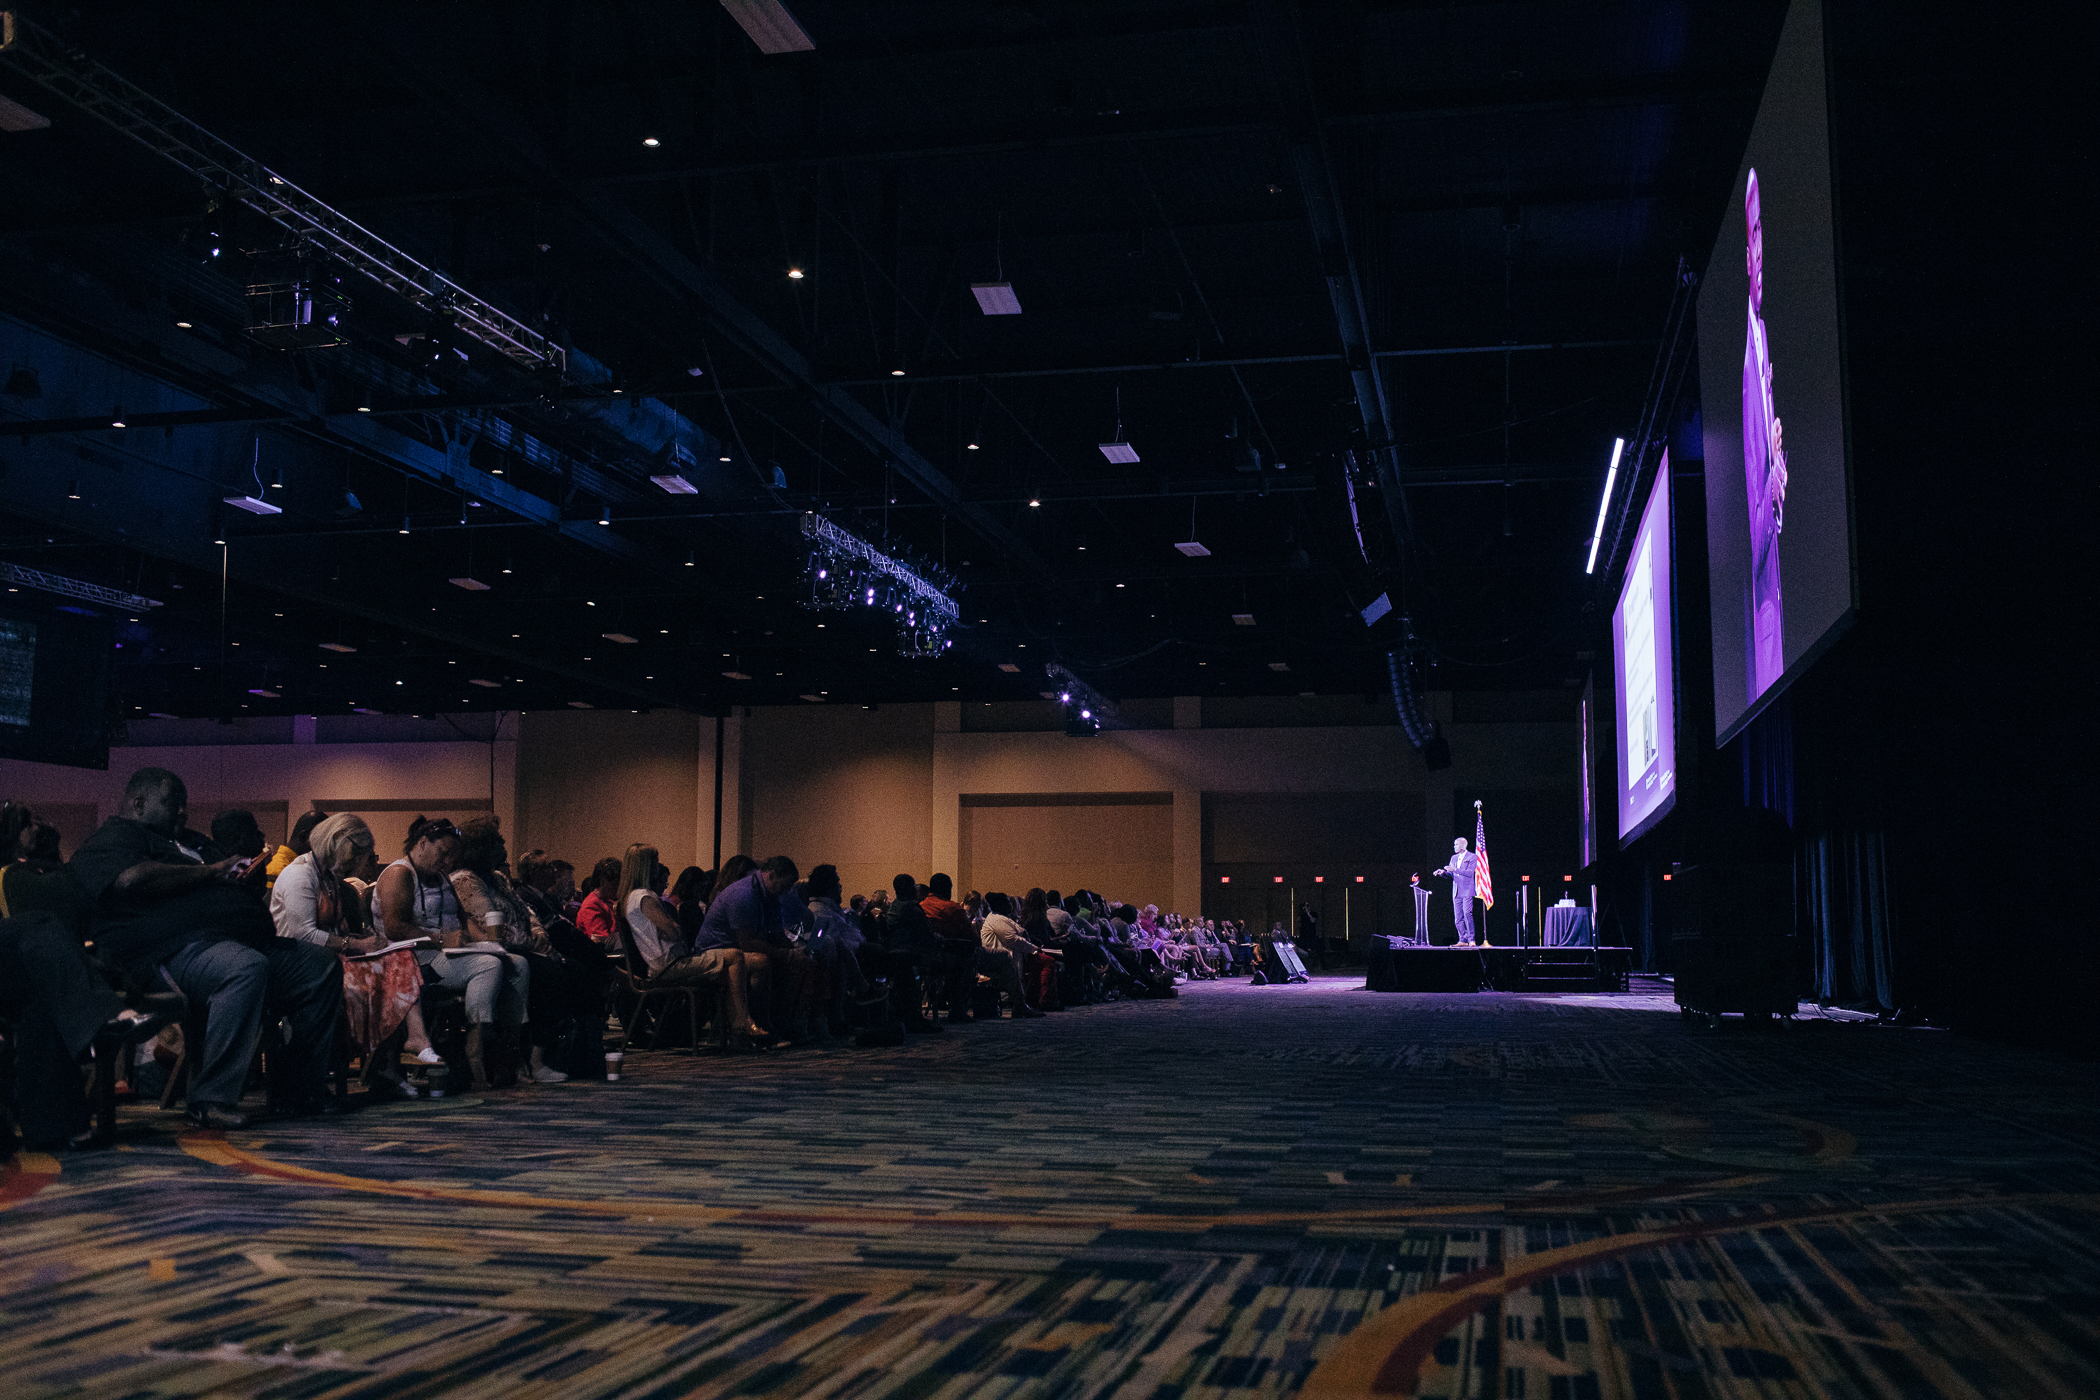 live event commercial photography brand storytelling for education florida conference photographer ©2018abigailbobophotography-100.jpg